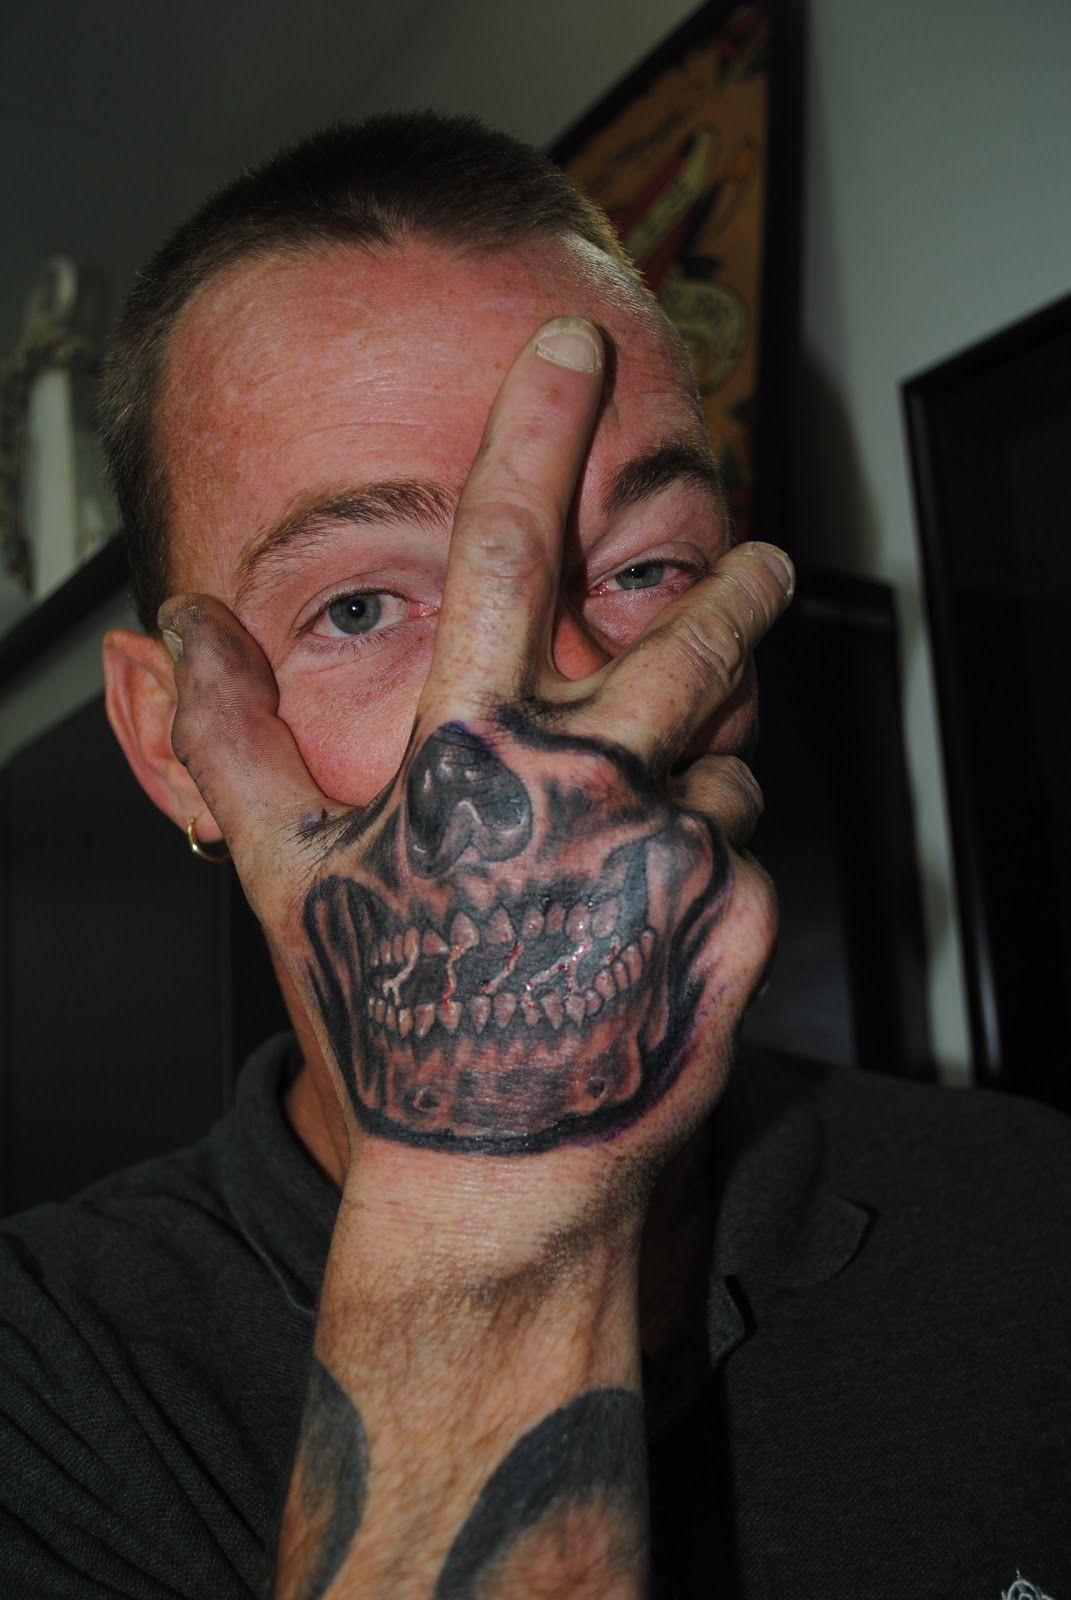 Skull Face Hand Tattoo. This guy was a nut. Skull hand